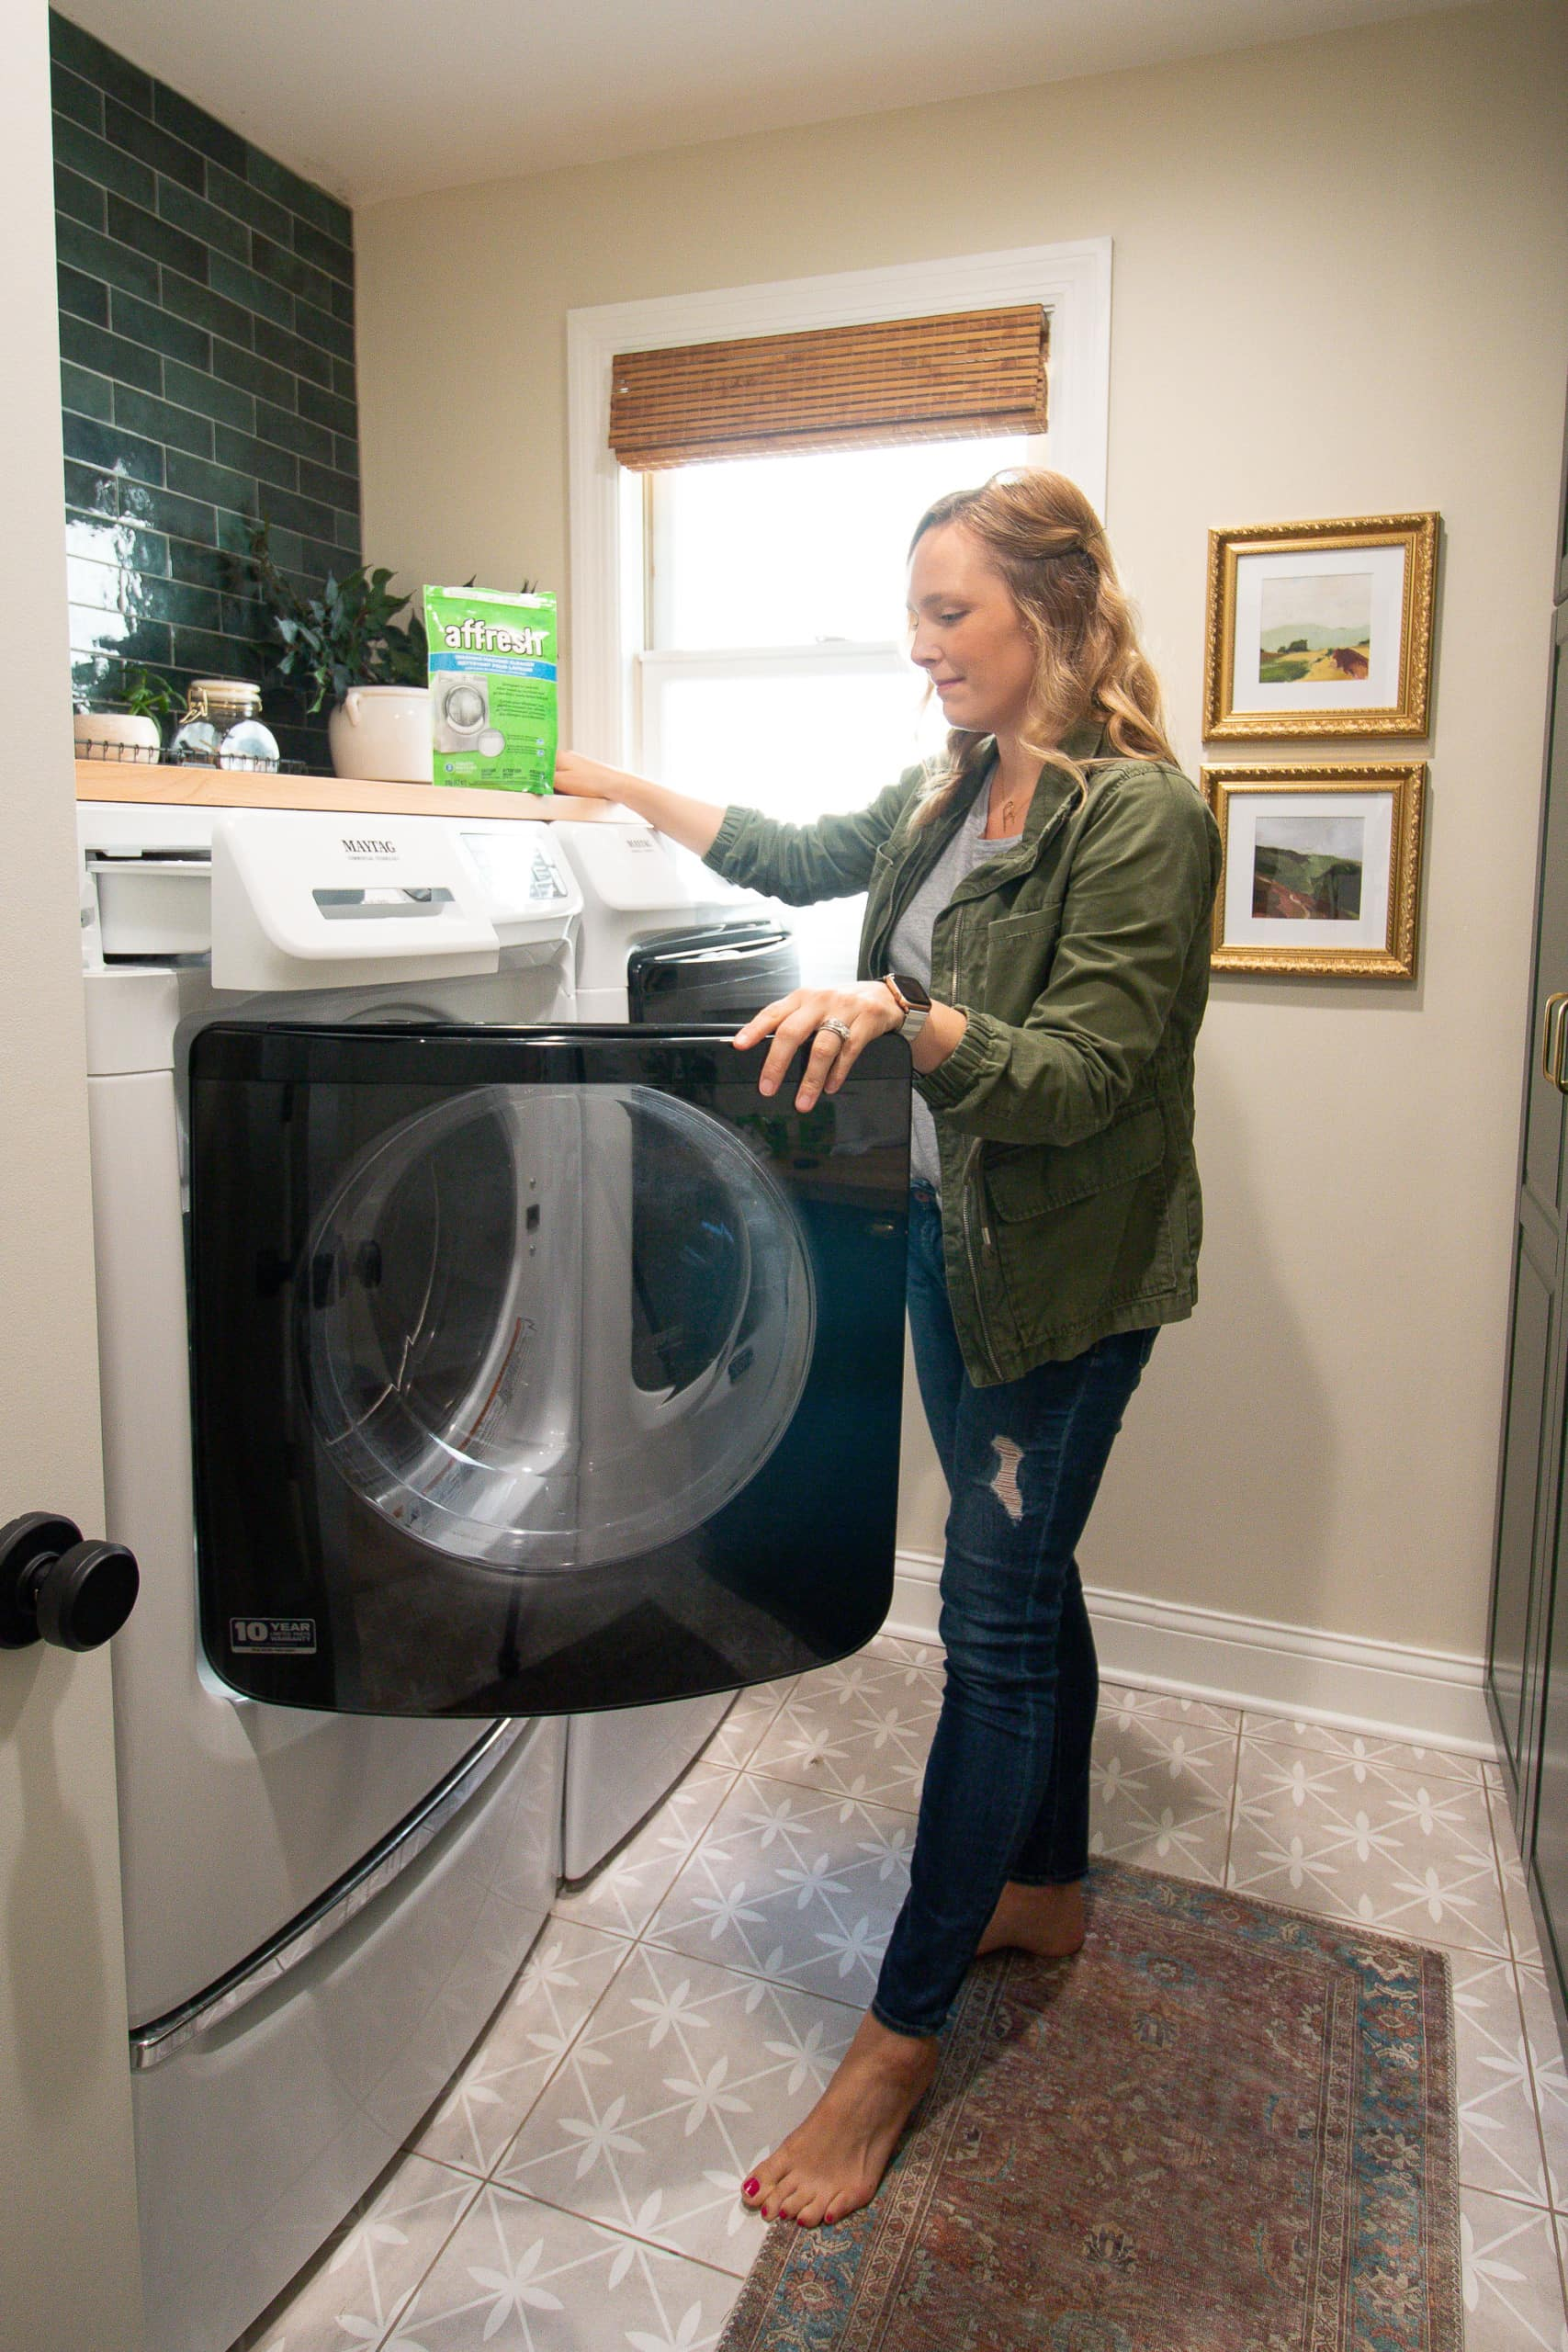 Tips to clean a front load washing machine